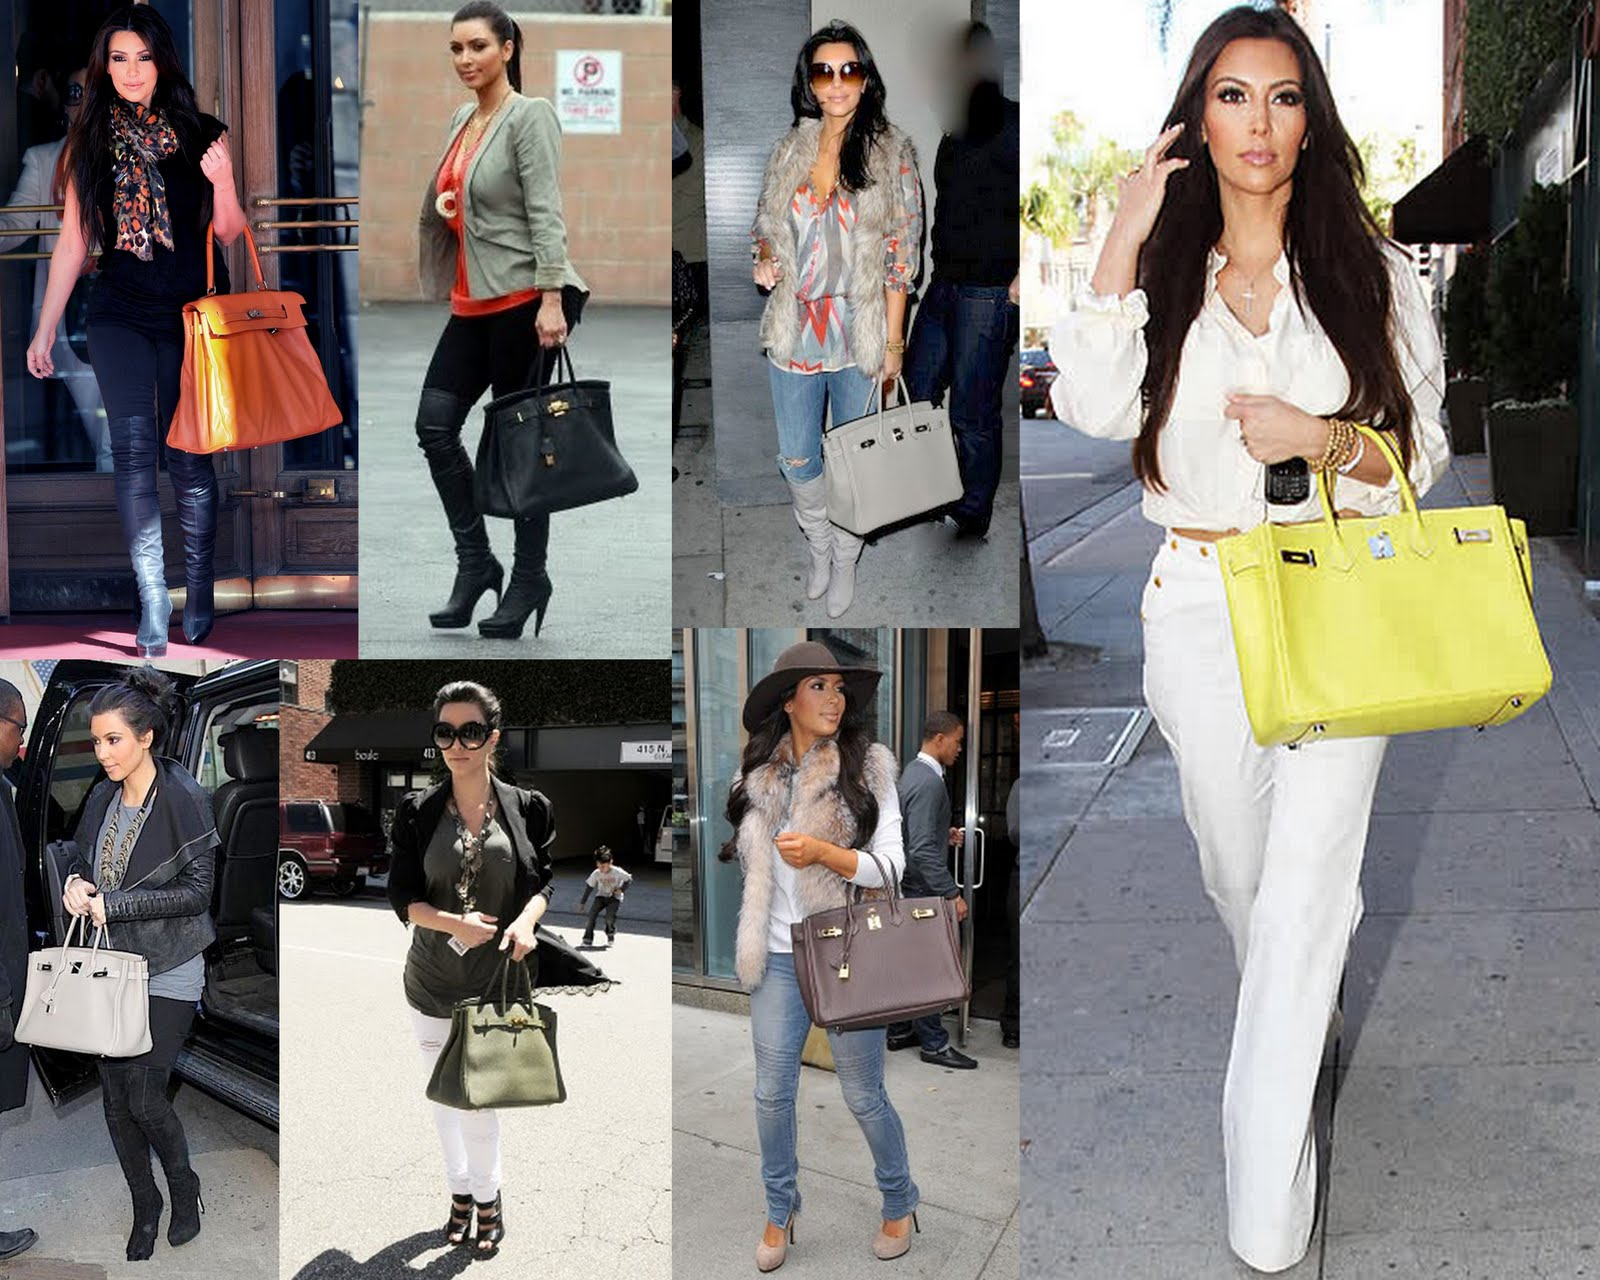 hermes inspired - Frills and Thrills: Keeping Up With The Kardashians & Their Birkin ...